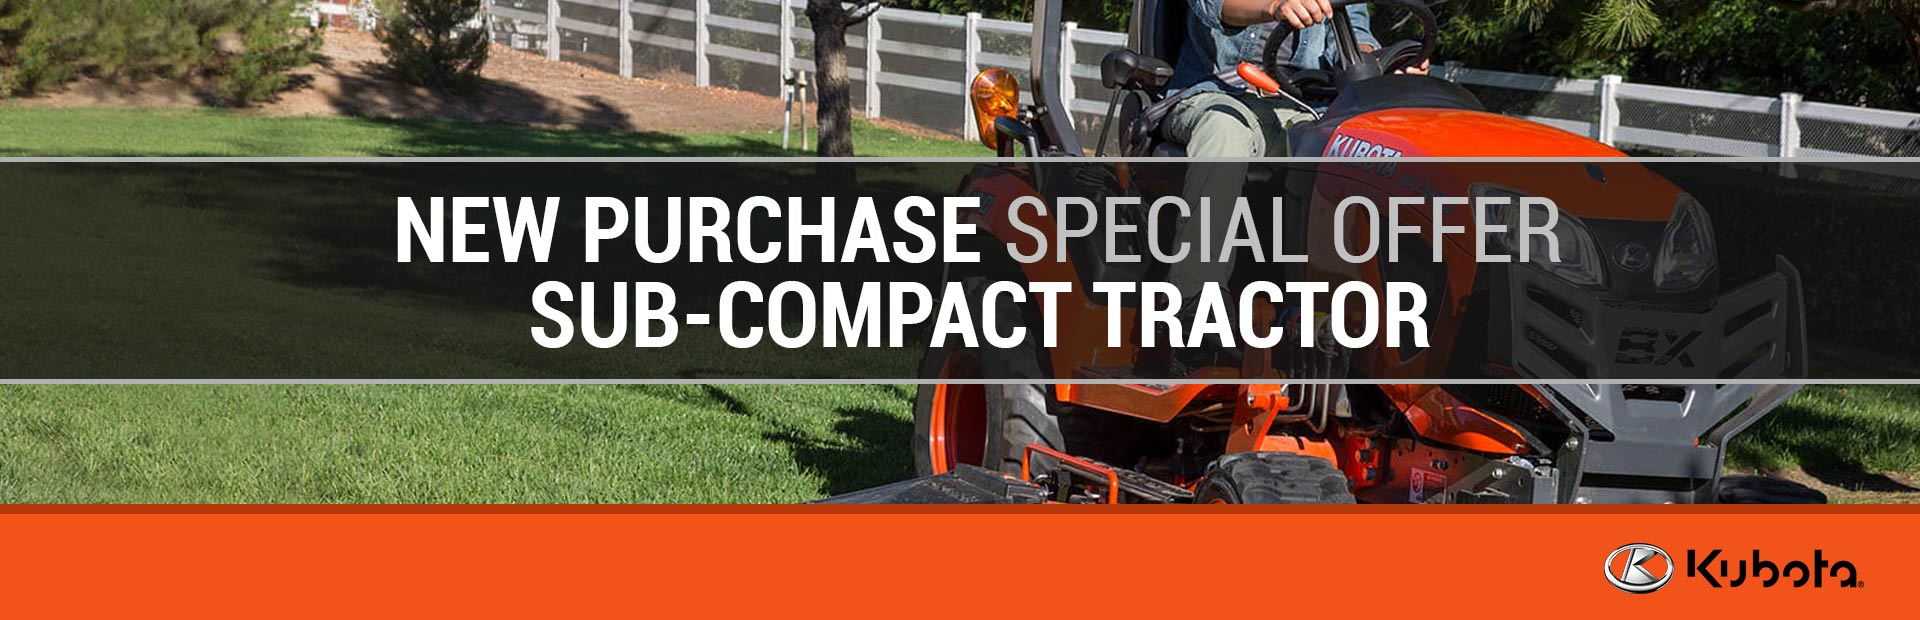 Kubota: New Purchase Special Offer - Sub-Compact Tractor